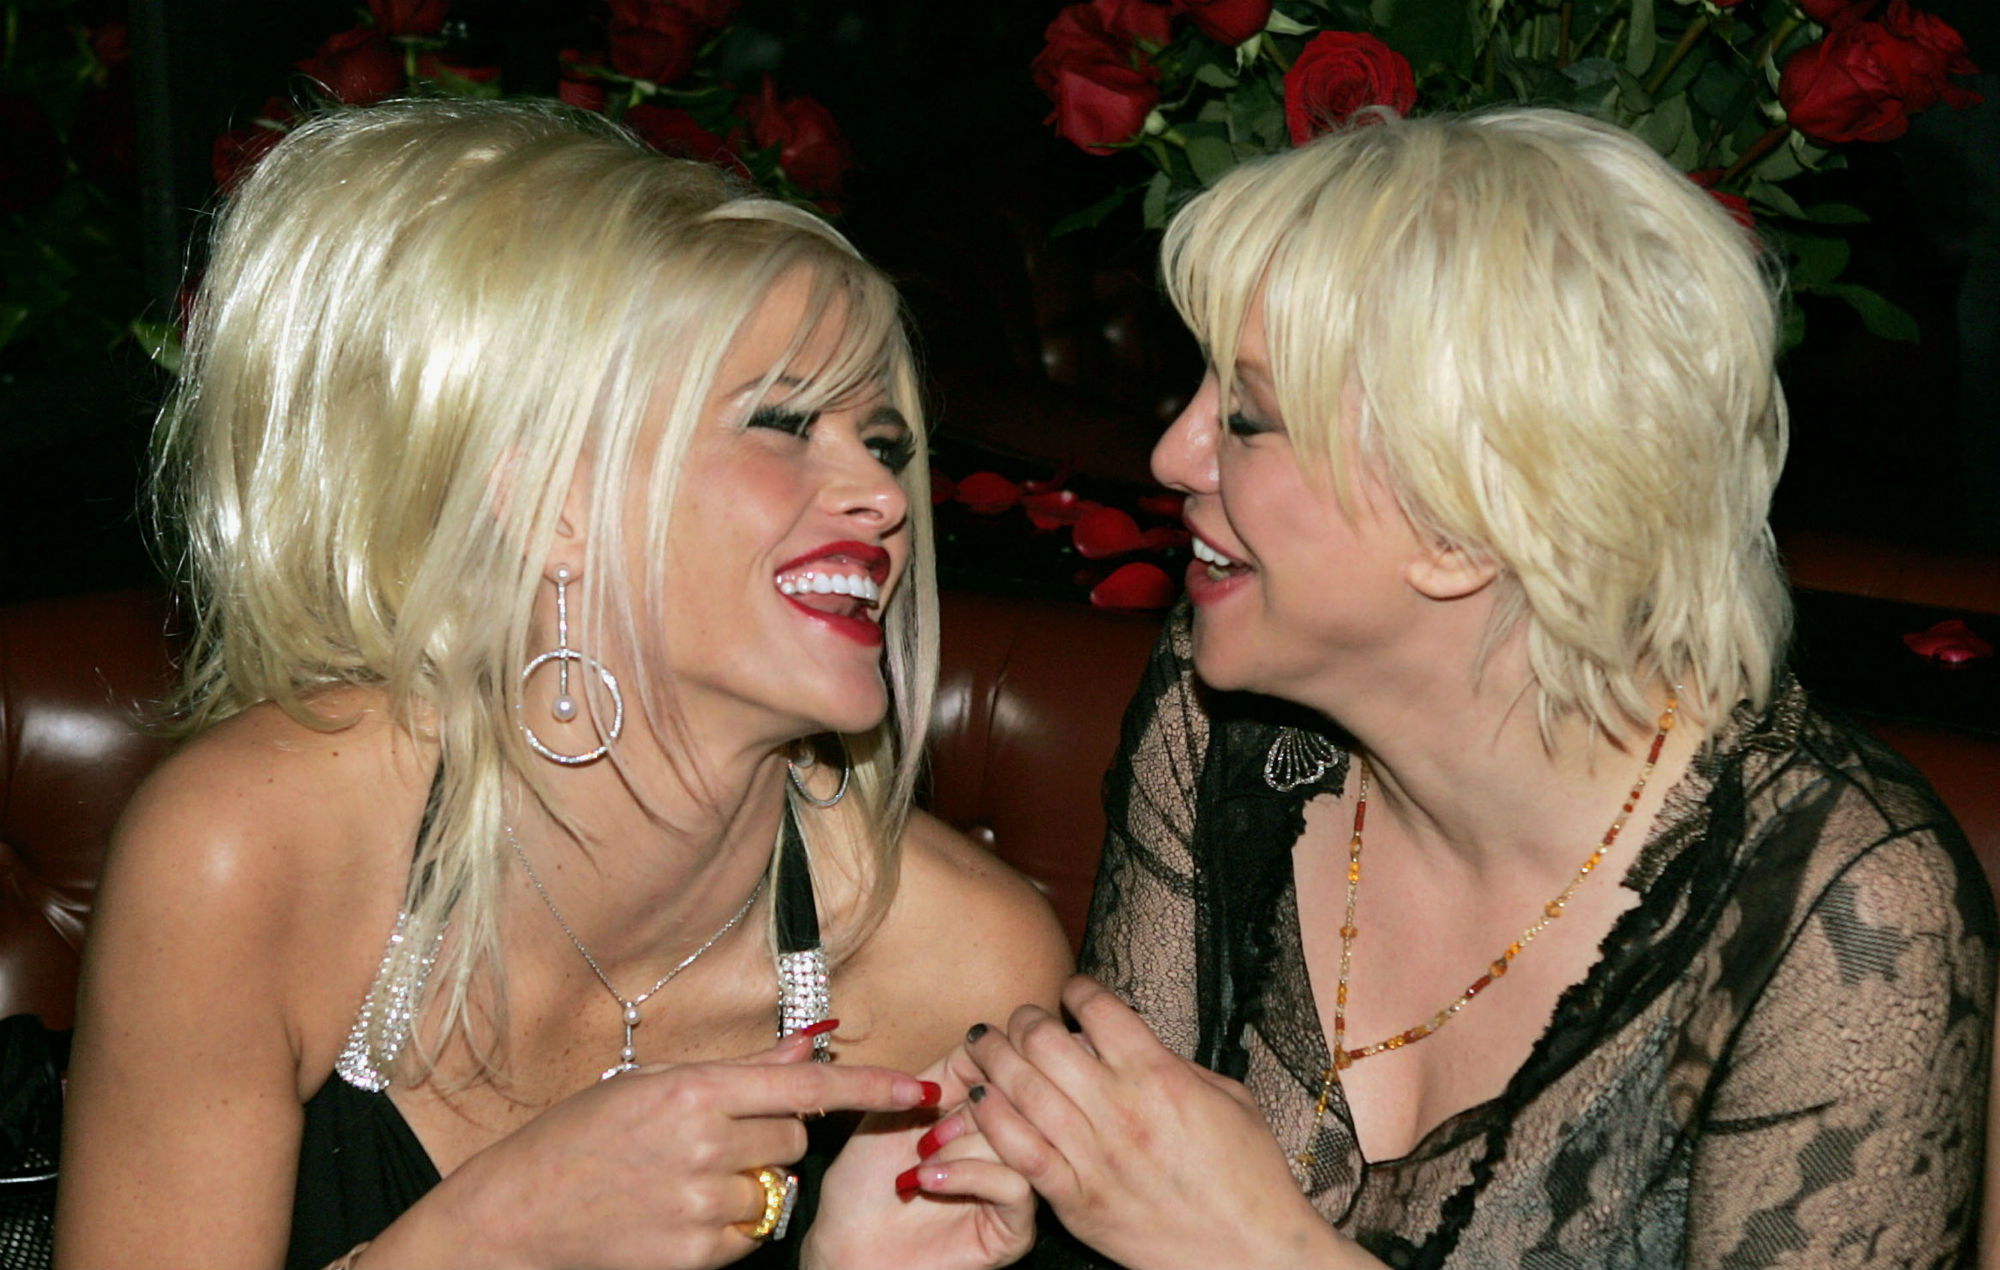 Courtney Love pays tribute to the late Anna Nicole Smith in emotional Instagram post